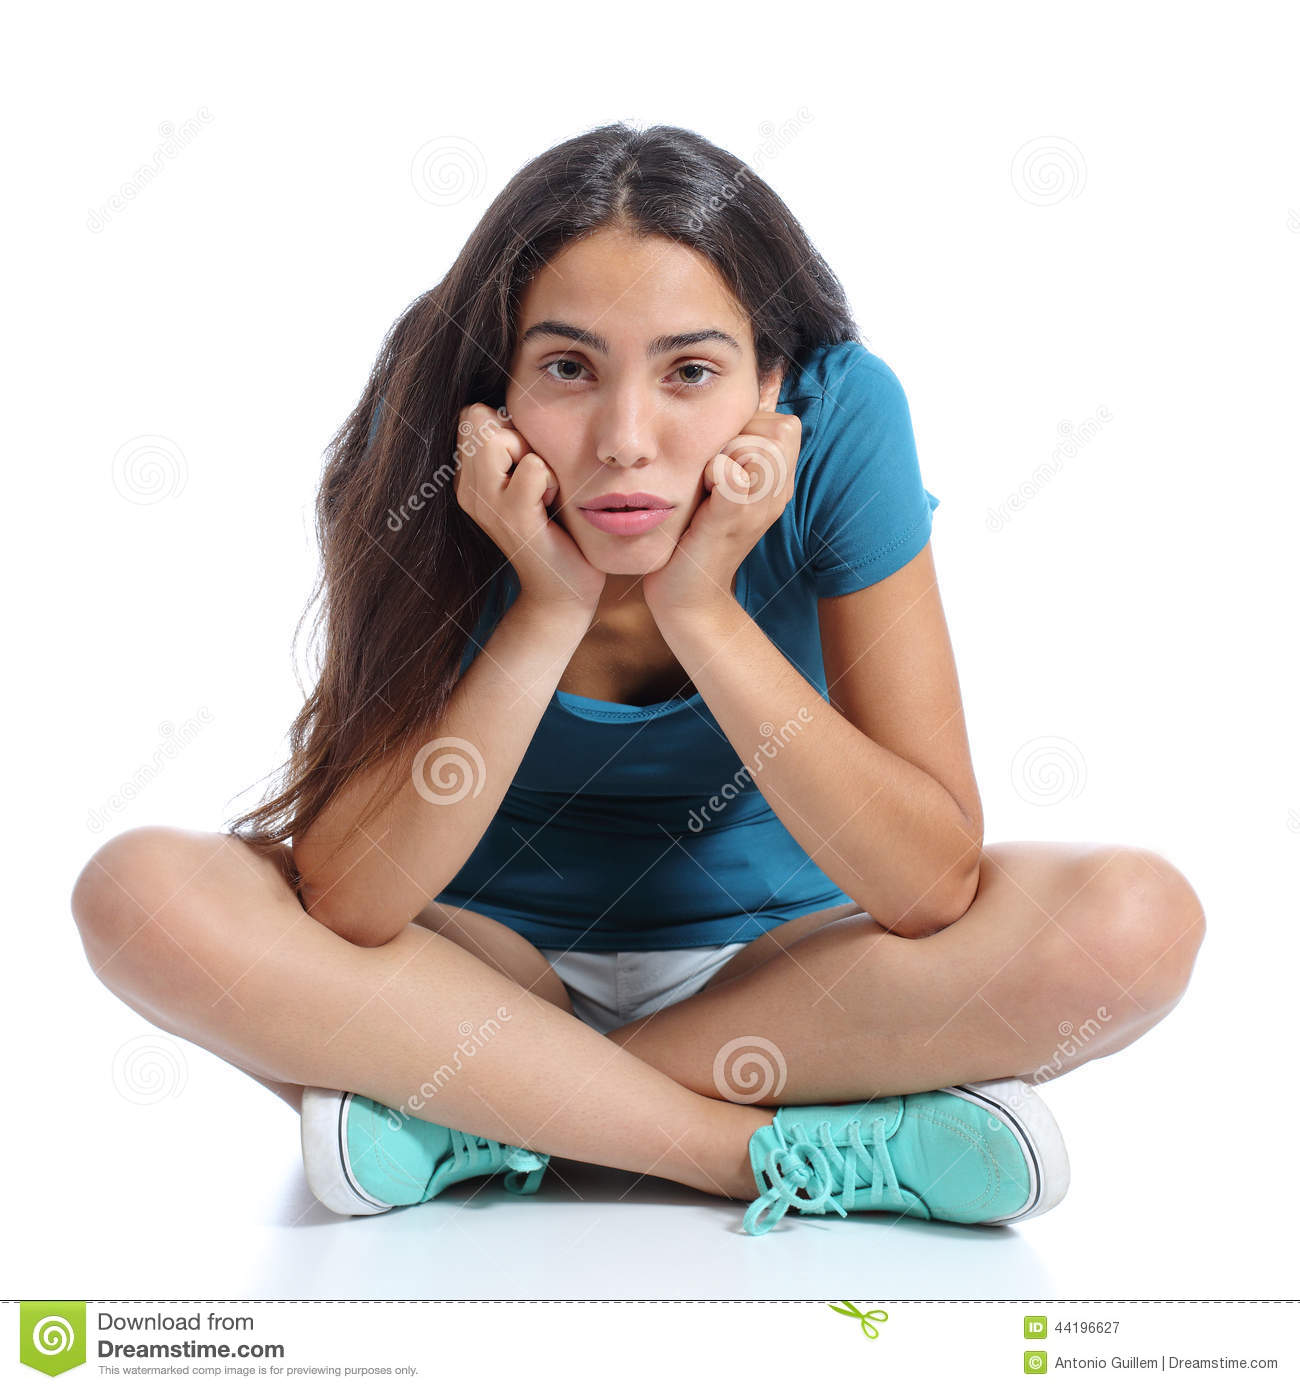 Bored Teenager Girl Sitting With Crossed Legs Stock Image